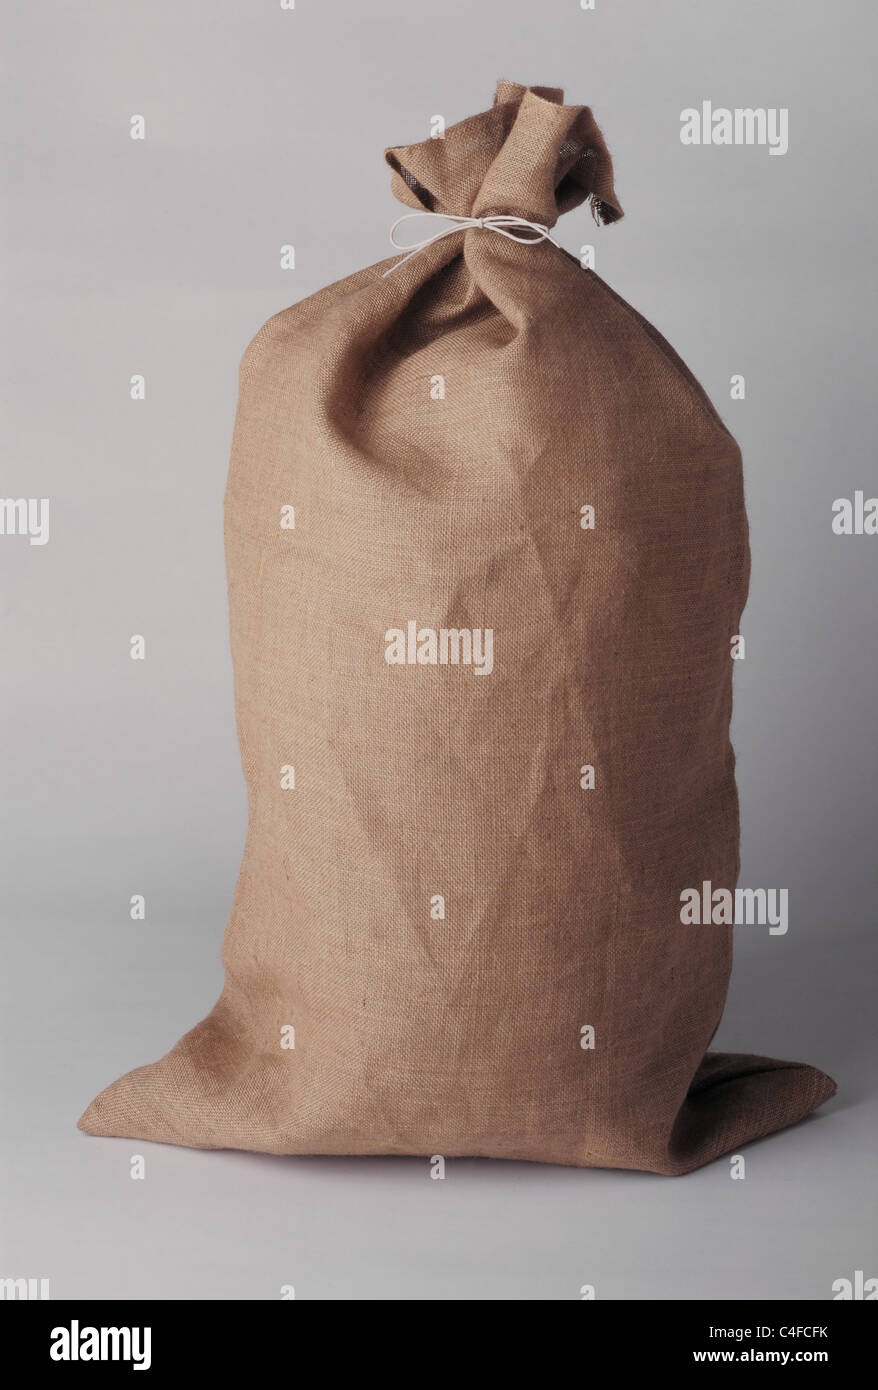 Hessian sack tied with string. - Stock Image